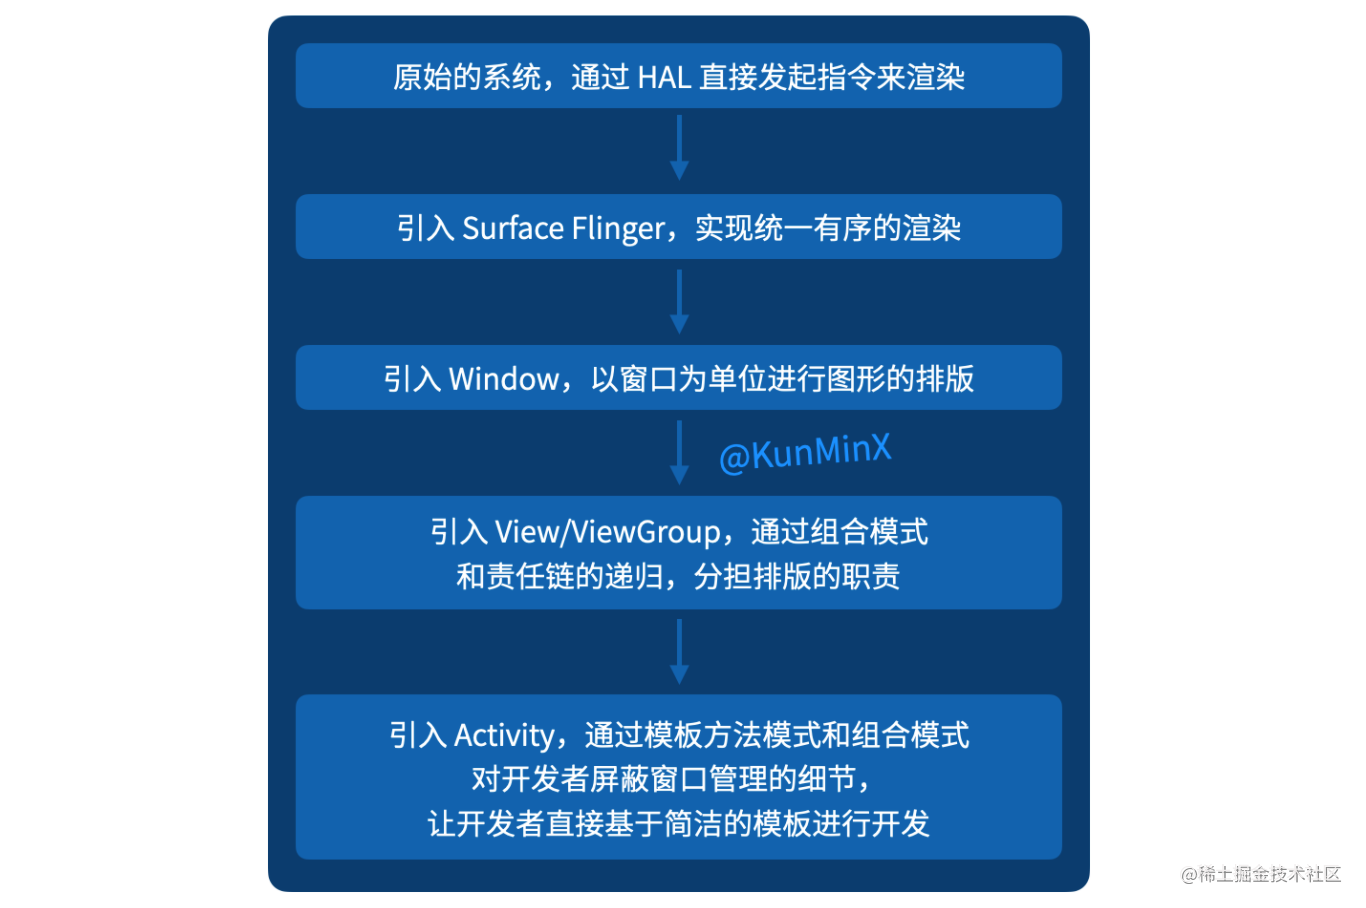 WX20210911-171959@2x.png